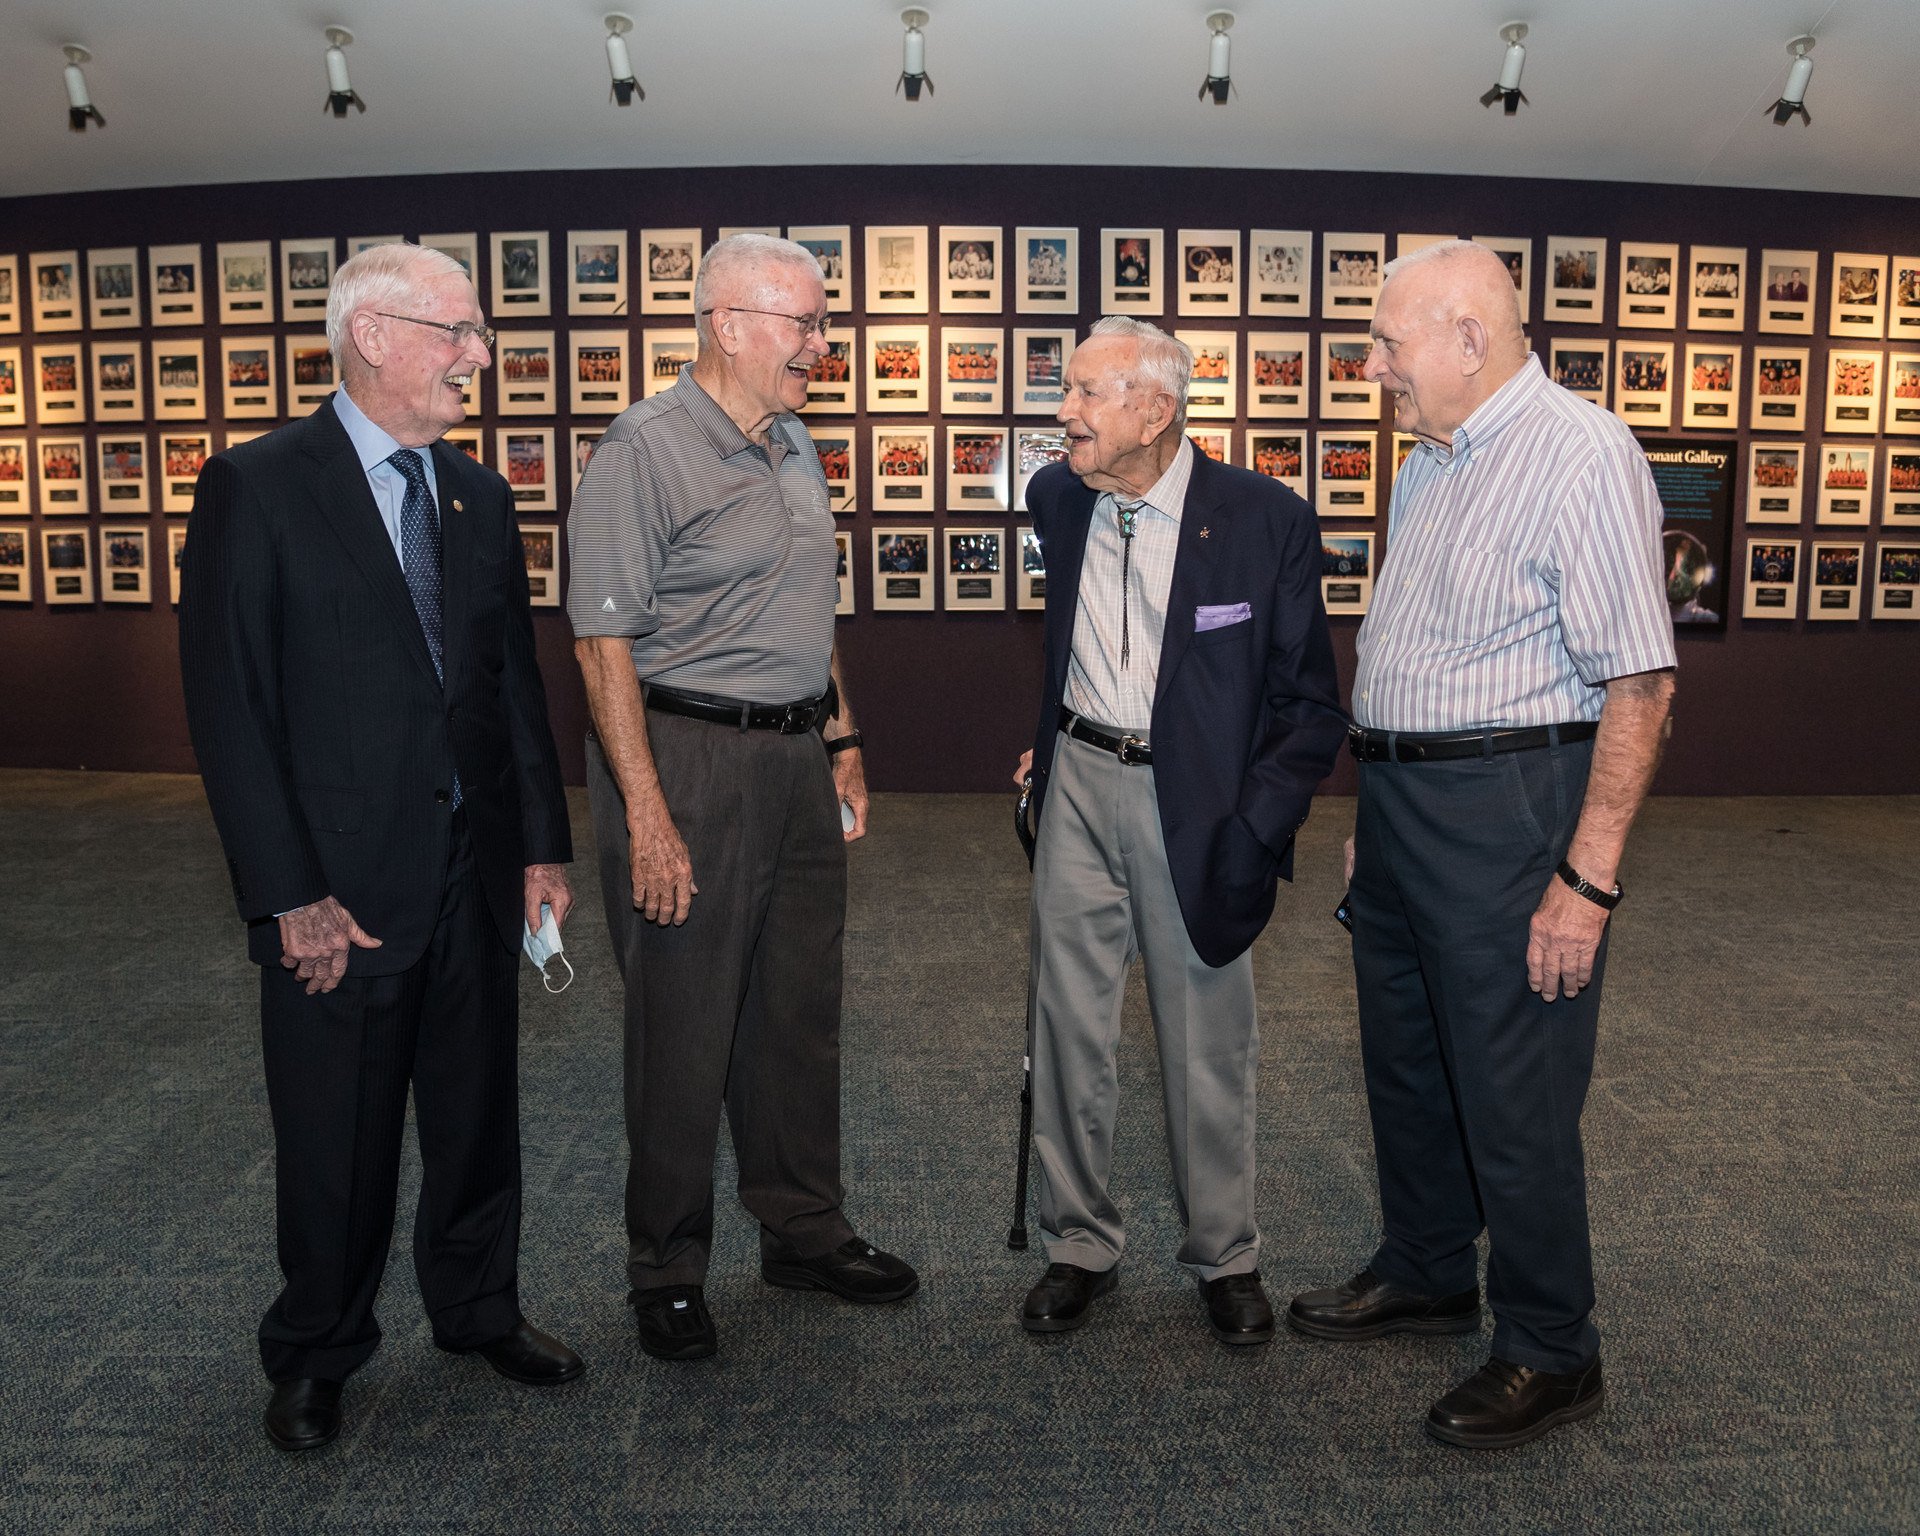 The premiere of the movie First Man at Space Center Houston. From left to right: Glynn Lunney, flight director during the Gemini and Apollo programs, Fred Haise, Apollo astronaut, Chris Kraft, NASA's first flight director, and Gene Kranz, flight director during the Gemini and Apollo programs.